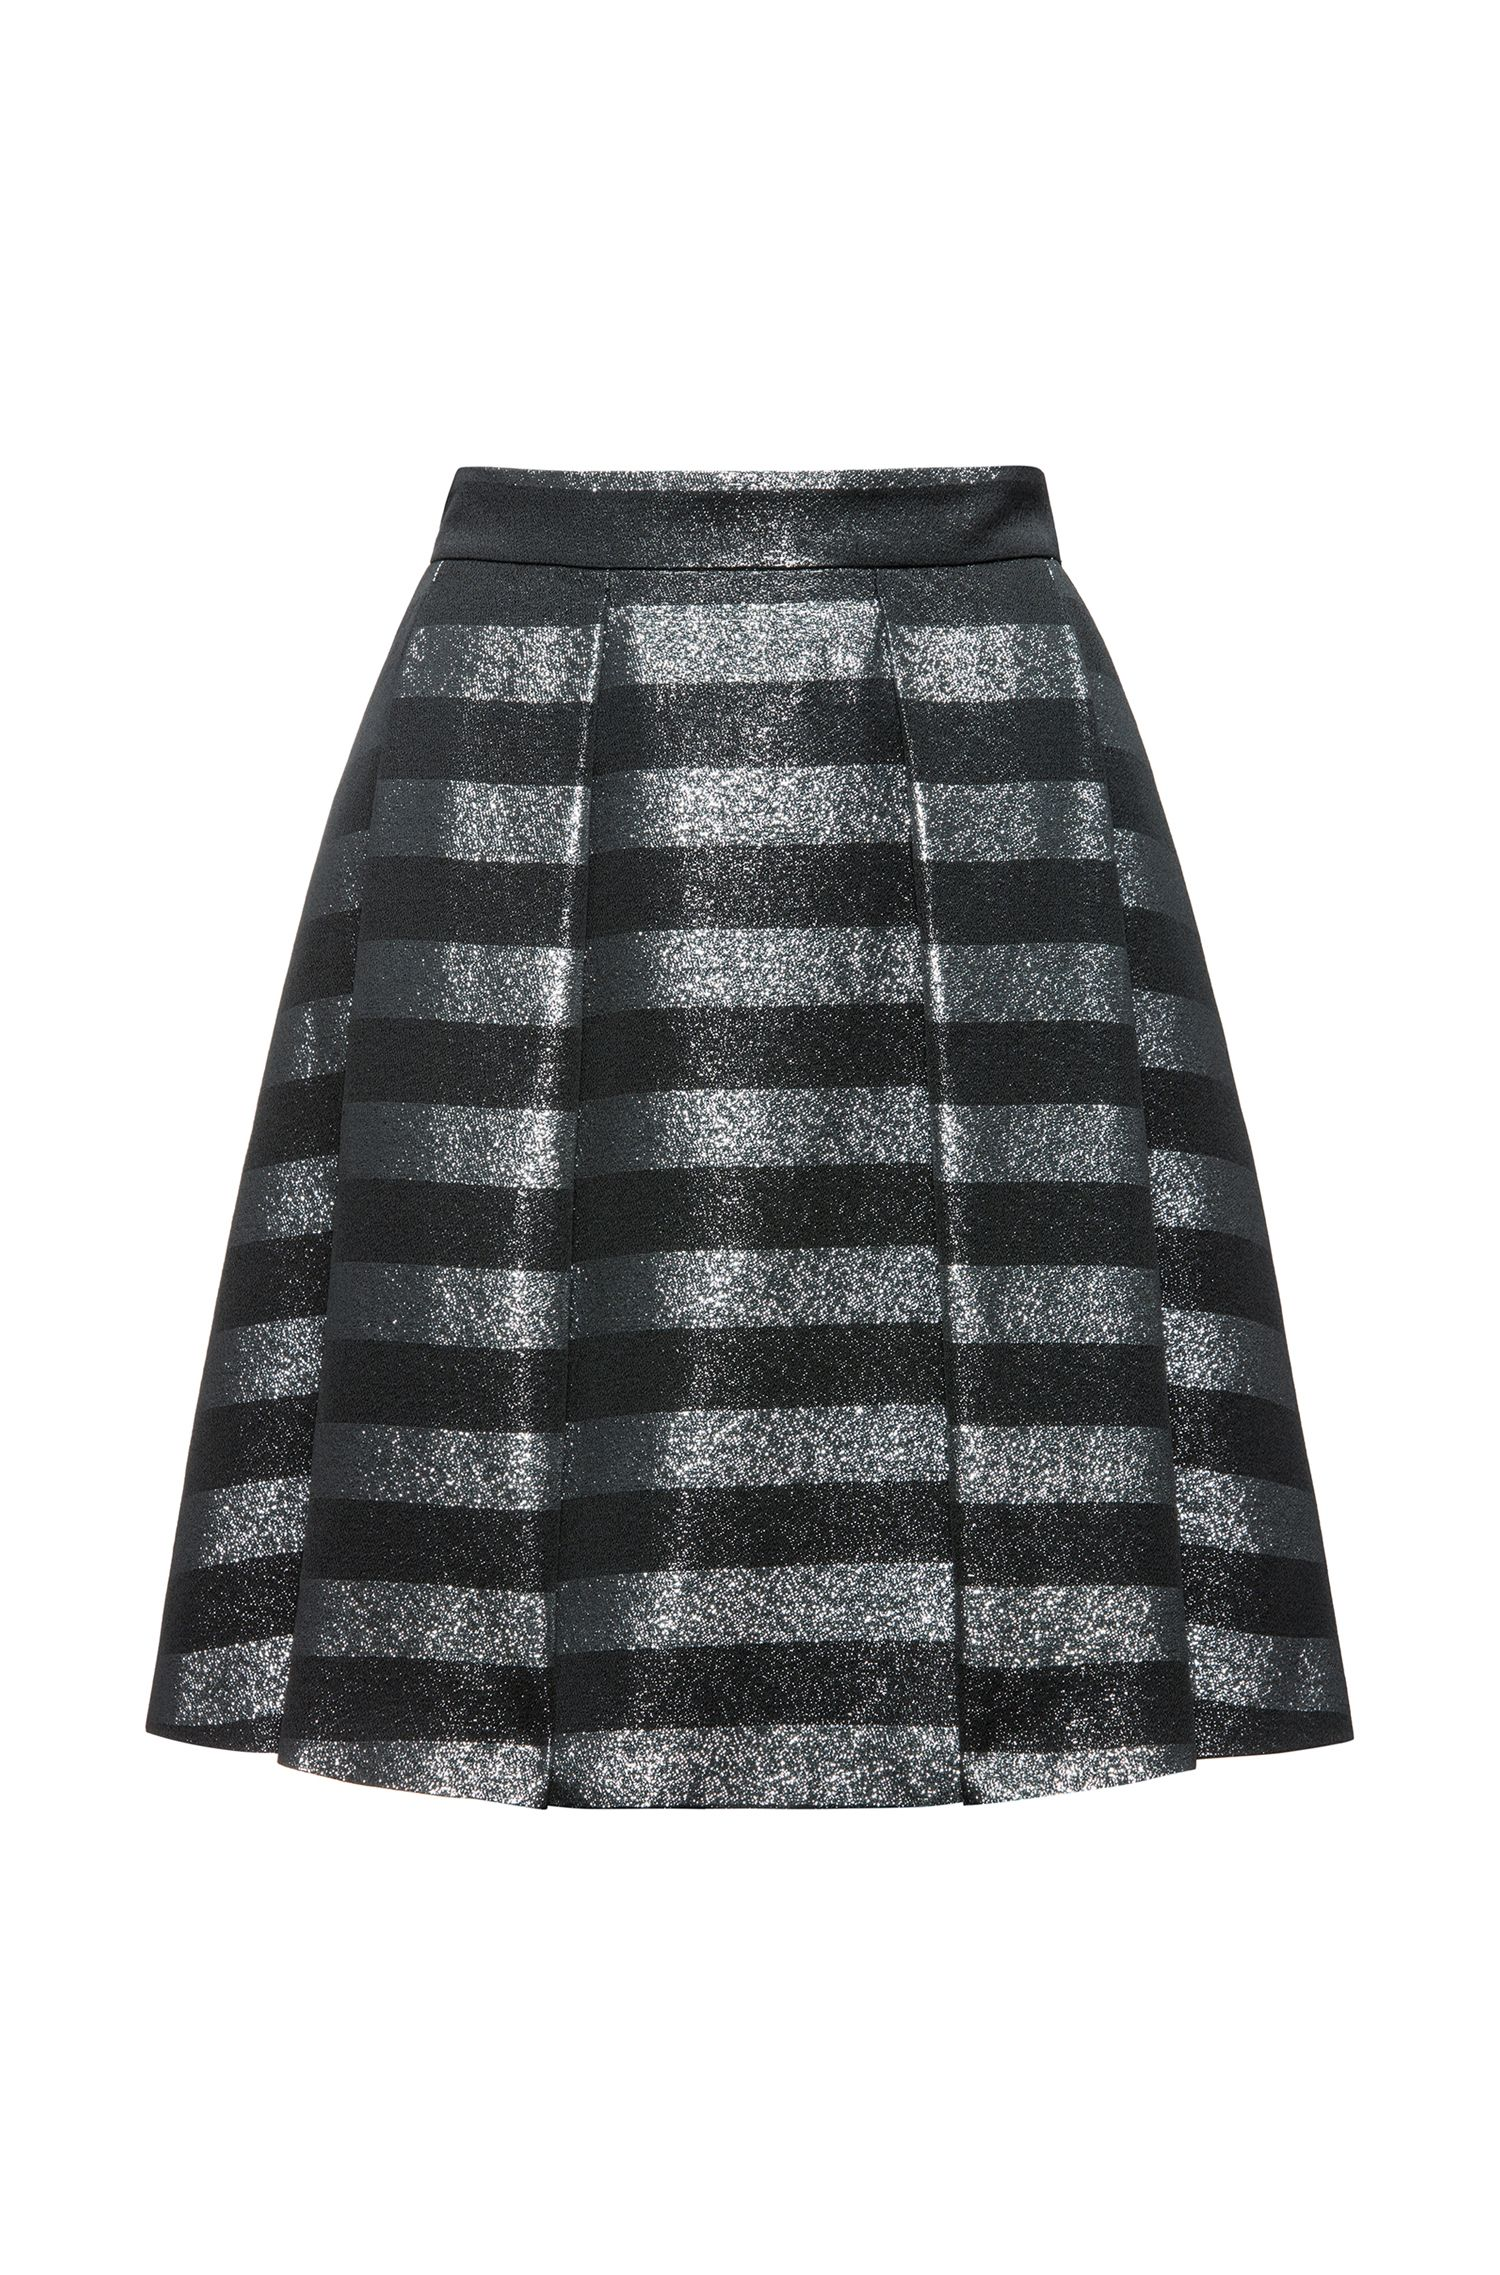 A-line skirt in striped fabric